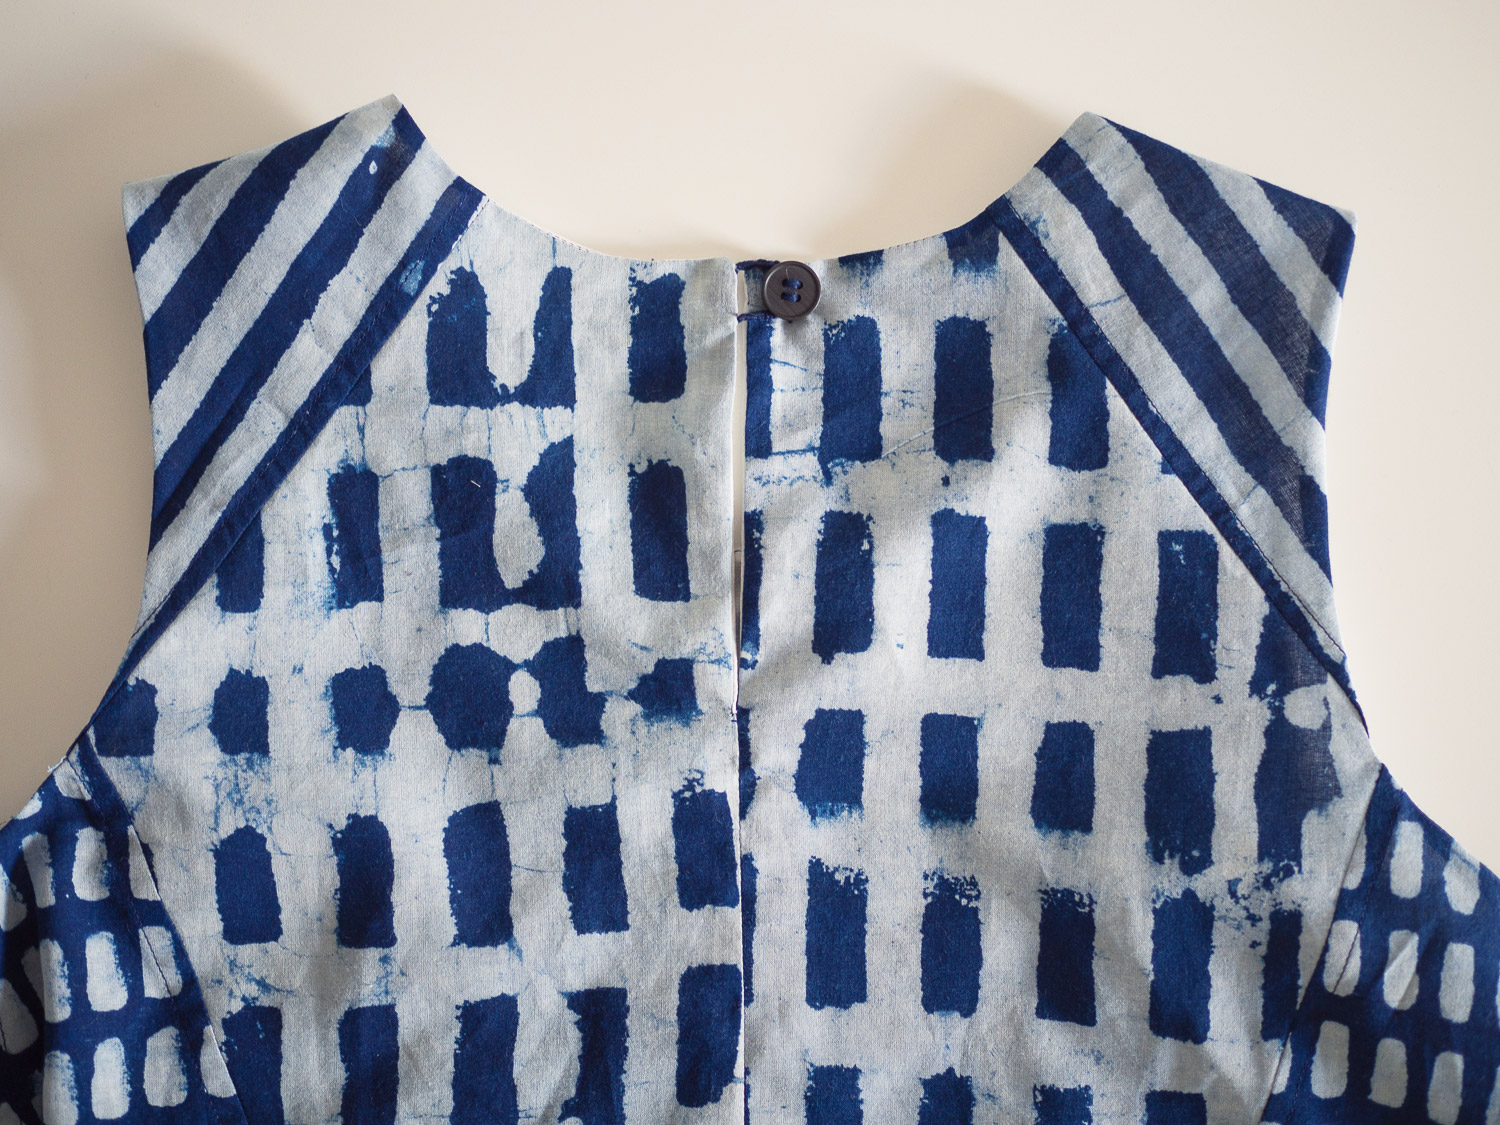 collins_sewing_button_14